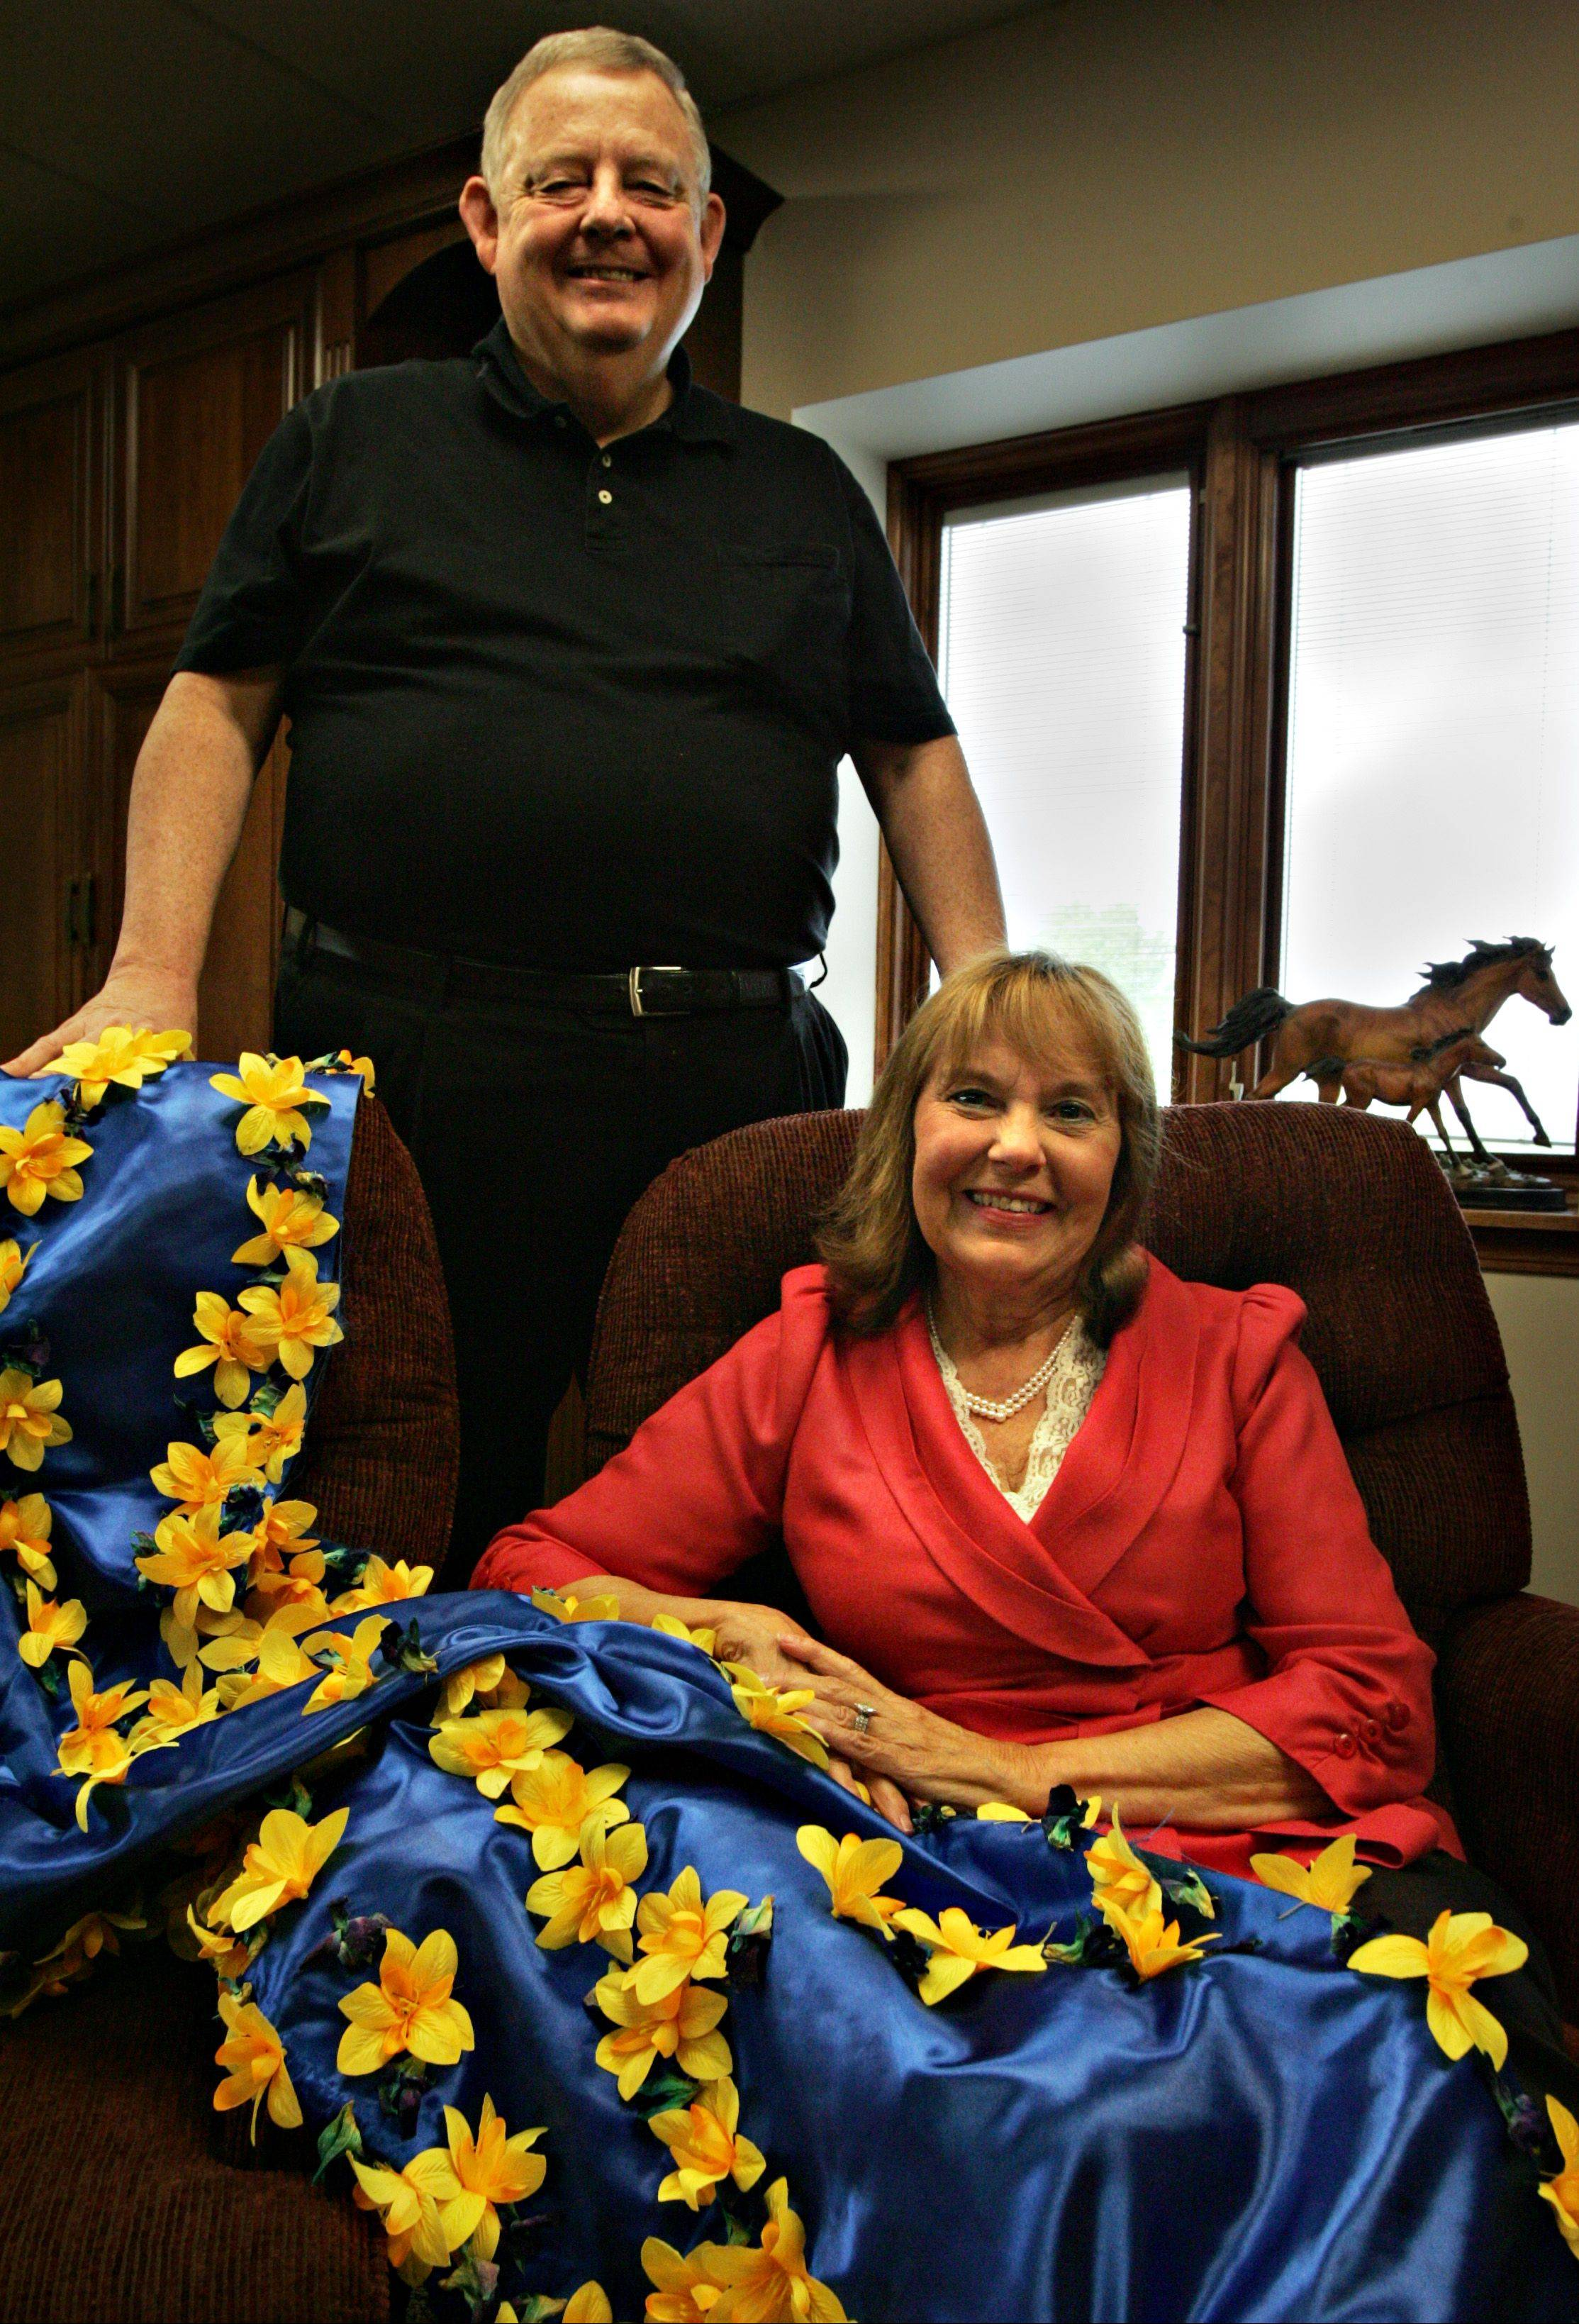 Chuck and Maribeth Sandford of Marengo are the owners of a horse named Take Charge Indy who is listed among the top contenders for the 2012 Kentucky Derby. The winner's garland on Maribeth's lap is the one that was presented to Take Charge Indy after he won the Florida Derby last month.